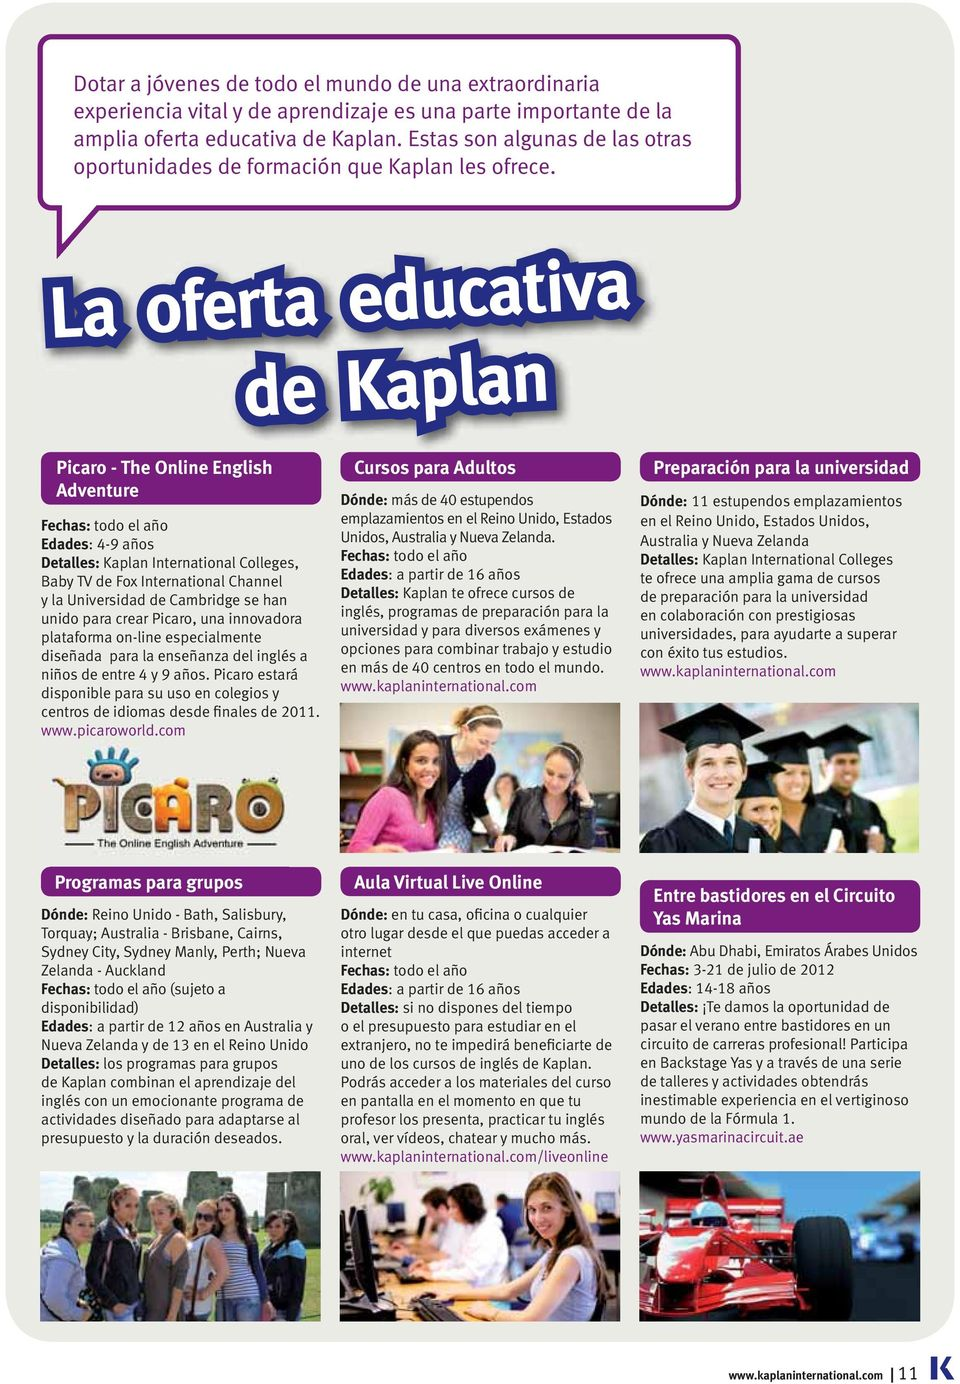 Picaro - The Online English Adventure Fechas: todo el año Edades: 4-9 años Detalles: Kaplan International Colleges, Baby TV de Fox International Channel y la Universidad de Cambridge se han unido